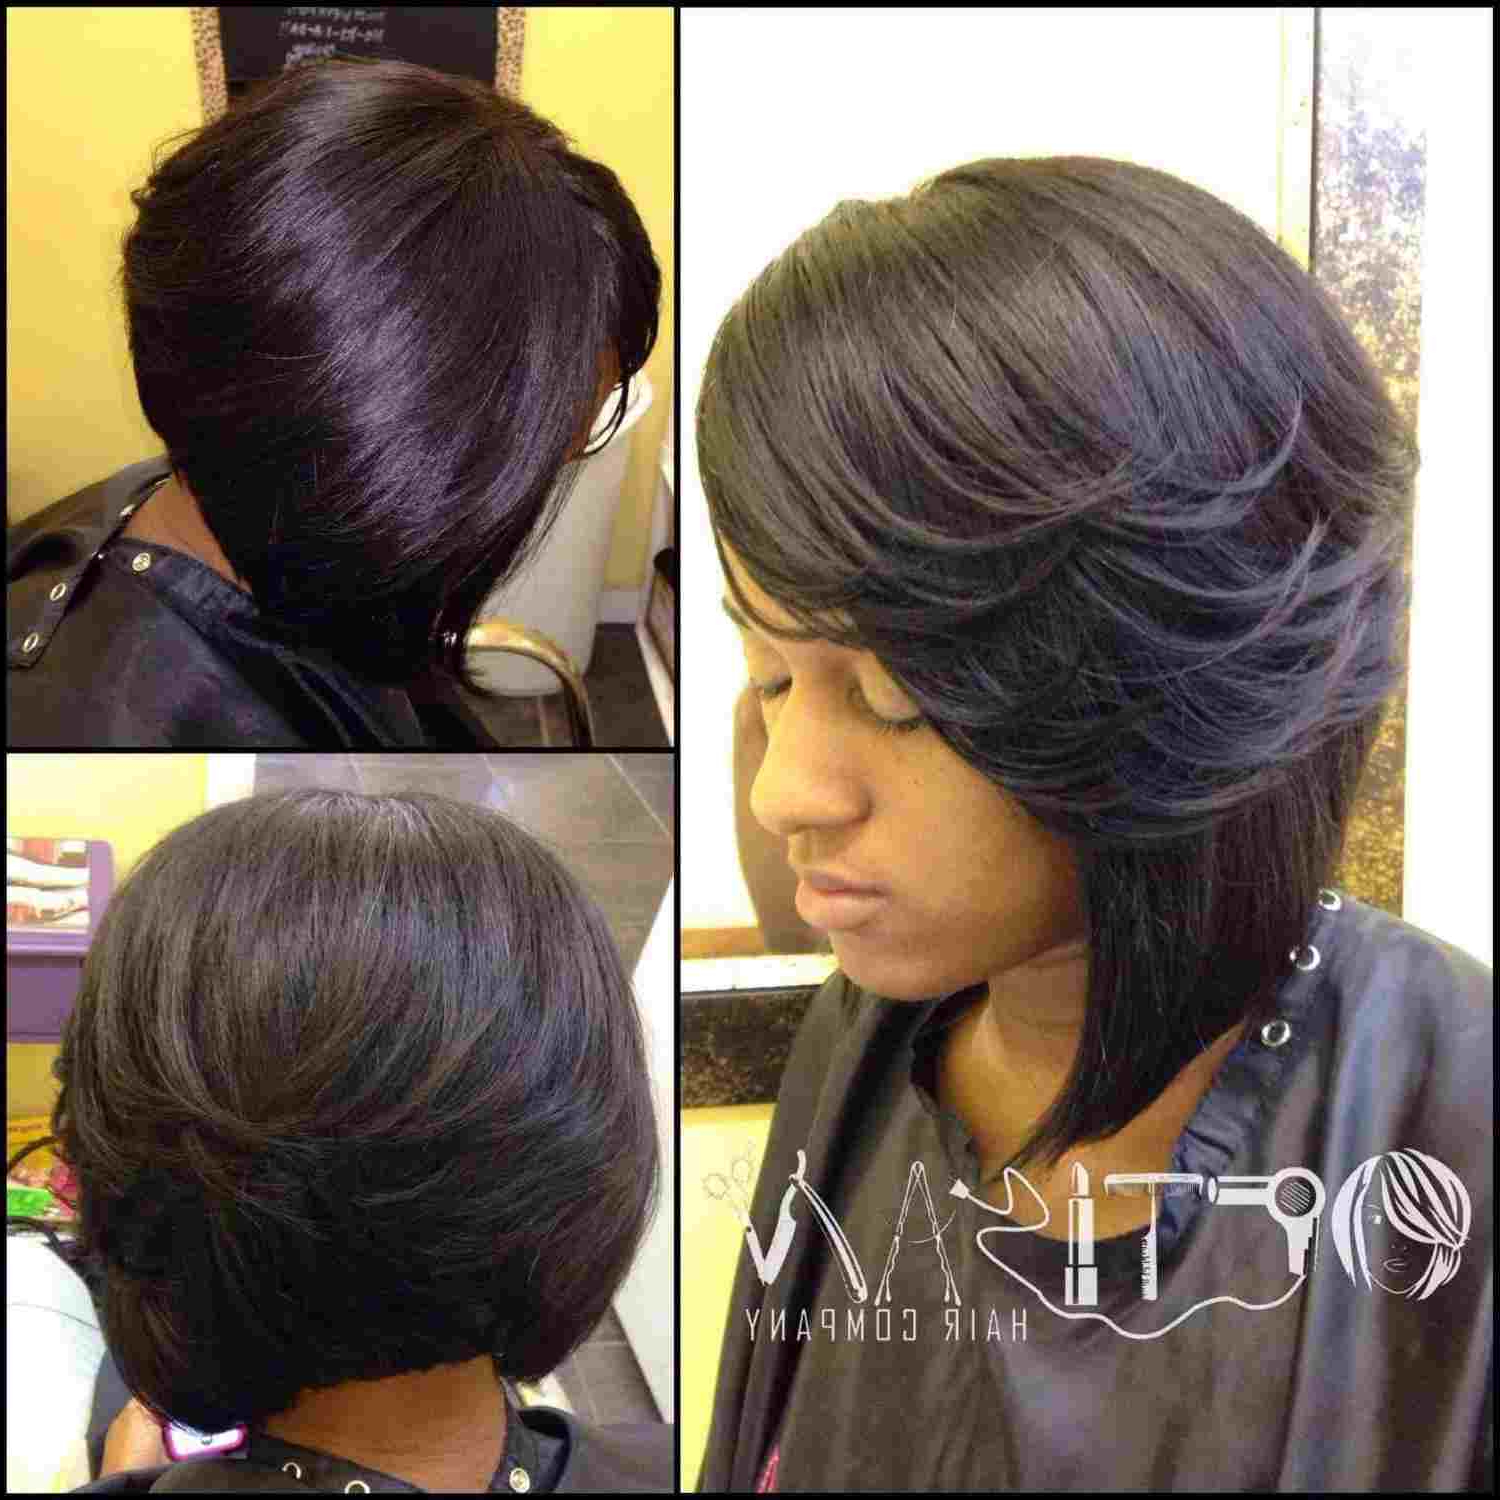 Bangs Black Layered Bob Hairstyles 2015 Google Search For Black Little Girl Short Hairstyles (View 12 of 25)